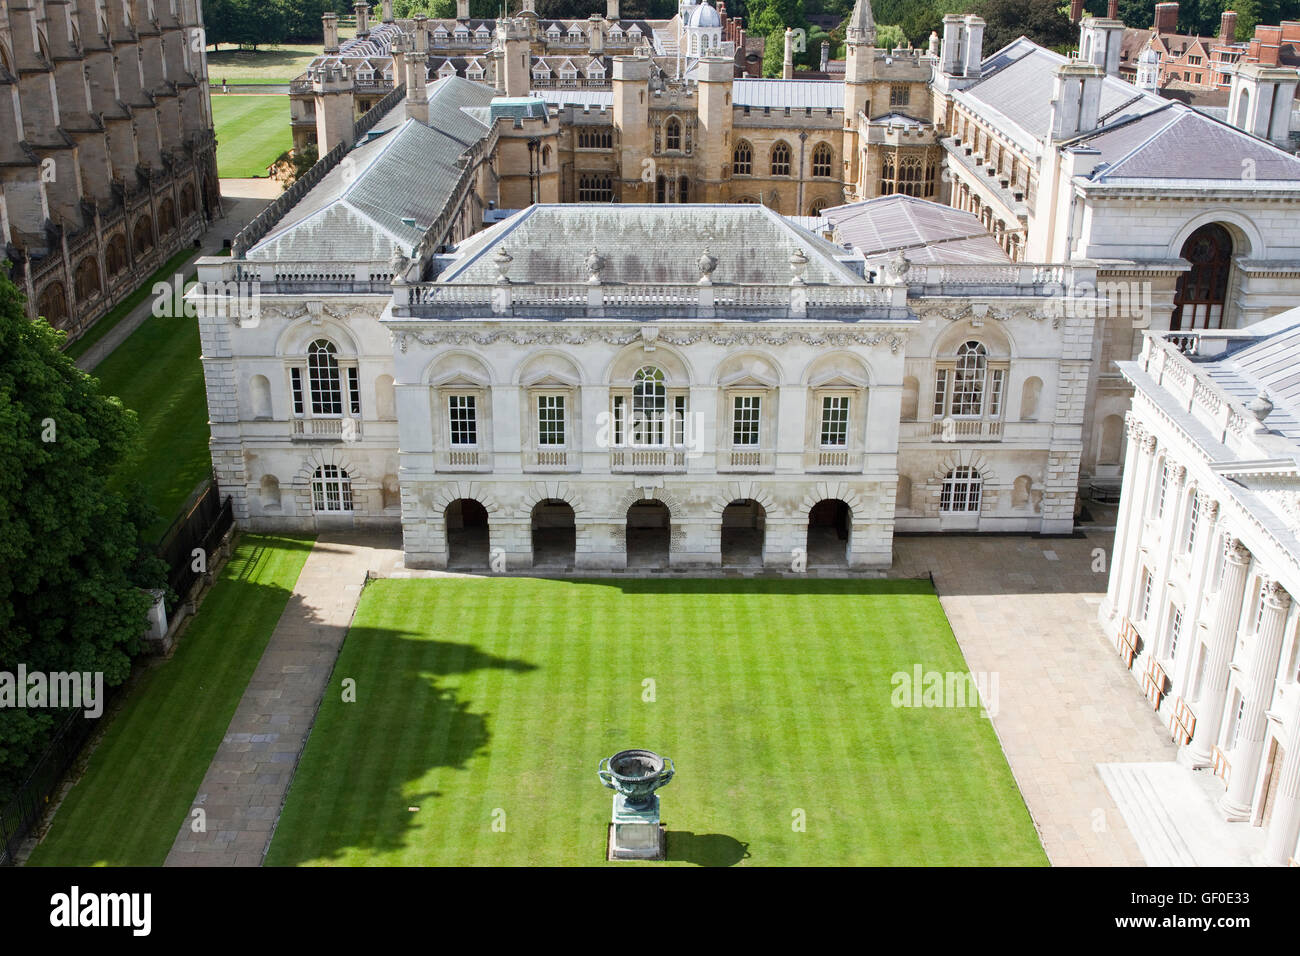 The Old Schools and Senate House, as as seen from the tower of Great St Mary's Church. King's College Chapel - Stock Image